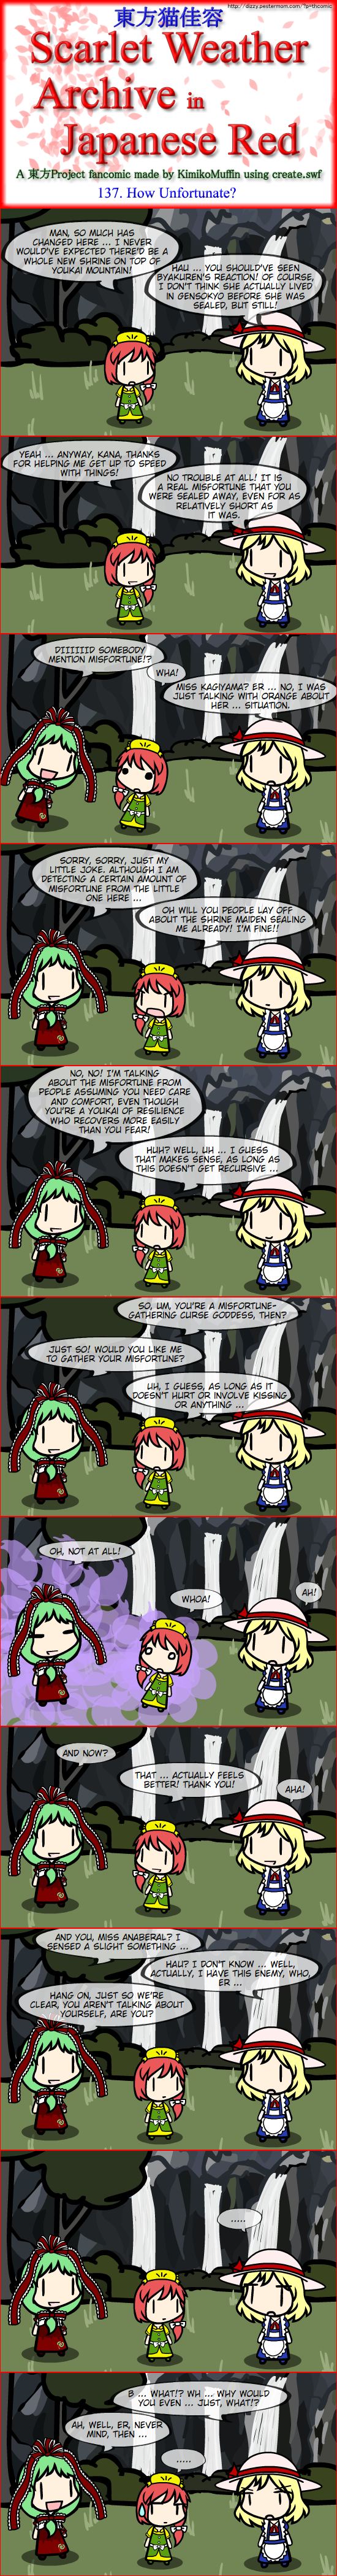 Touhou Nekokayou: Scarlet Weather Archive in Japanese Red #137